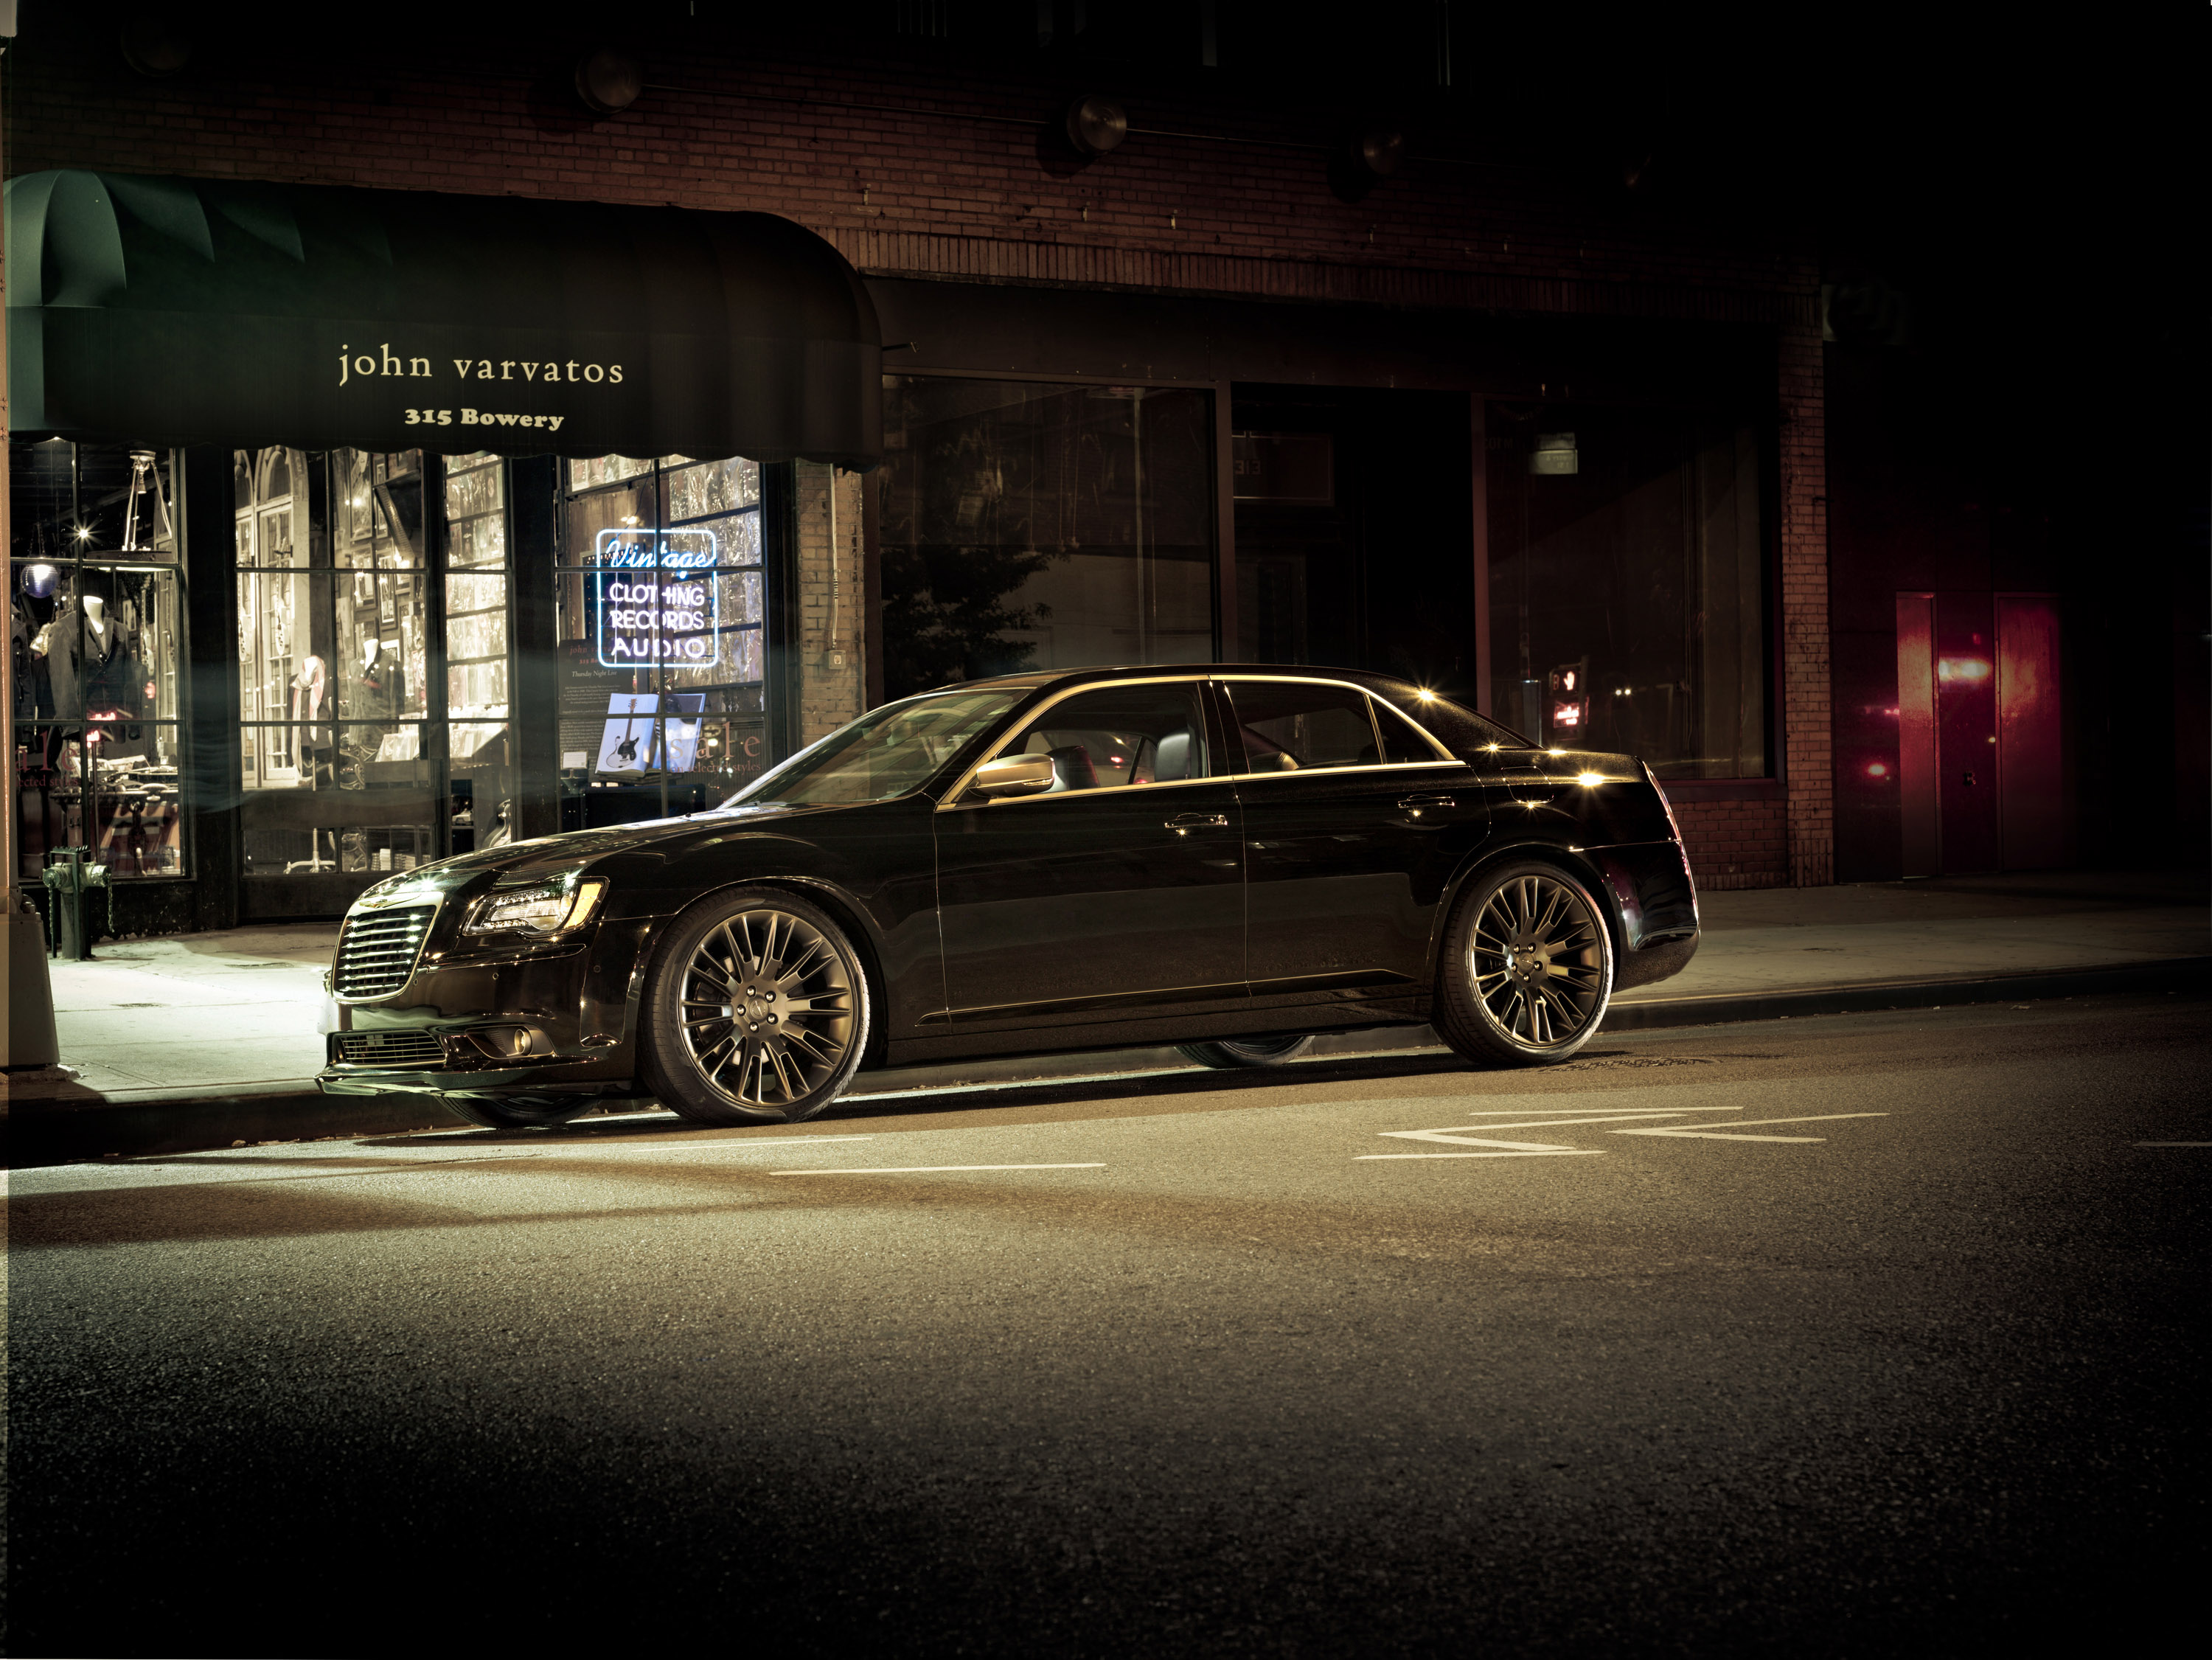 2013 Chrysler 300 C John Varvatos >> Unboxing Of 2013 Chrysler 300C John Varvatos Limited Edition [VIDEO]